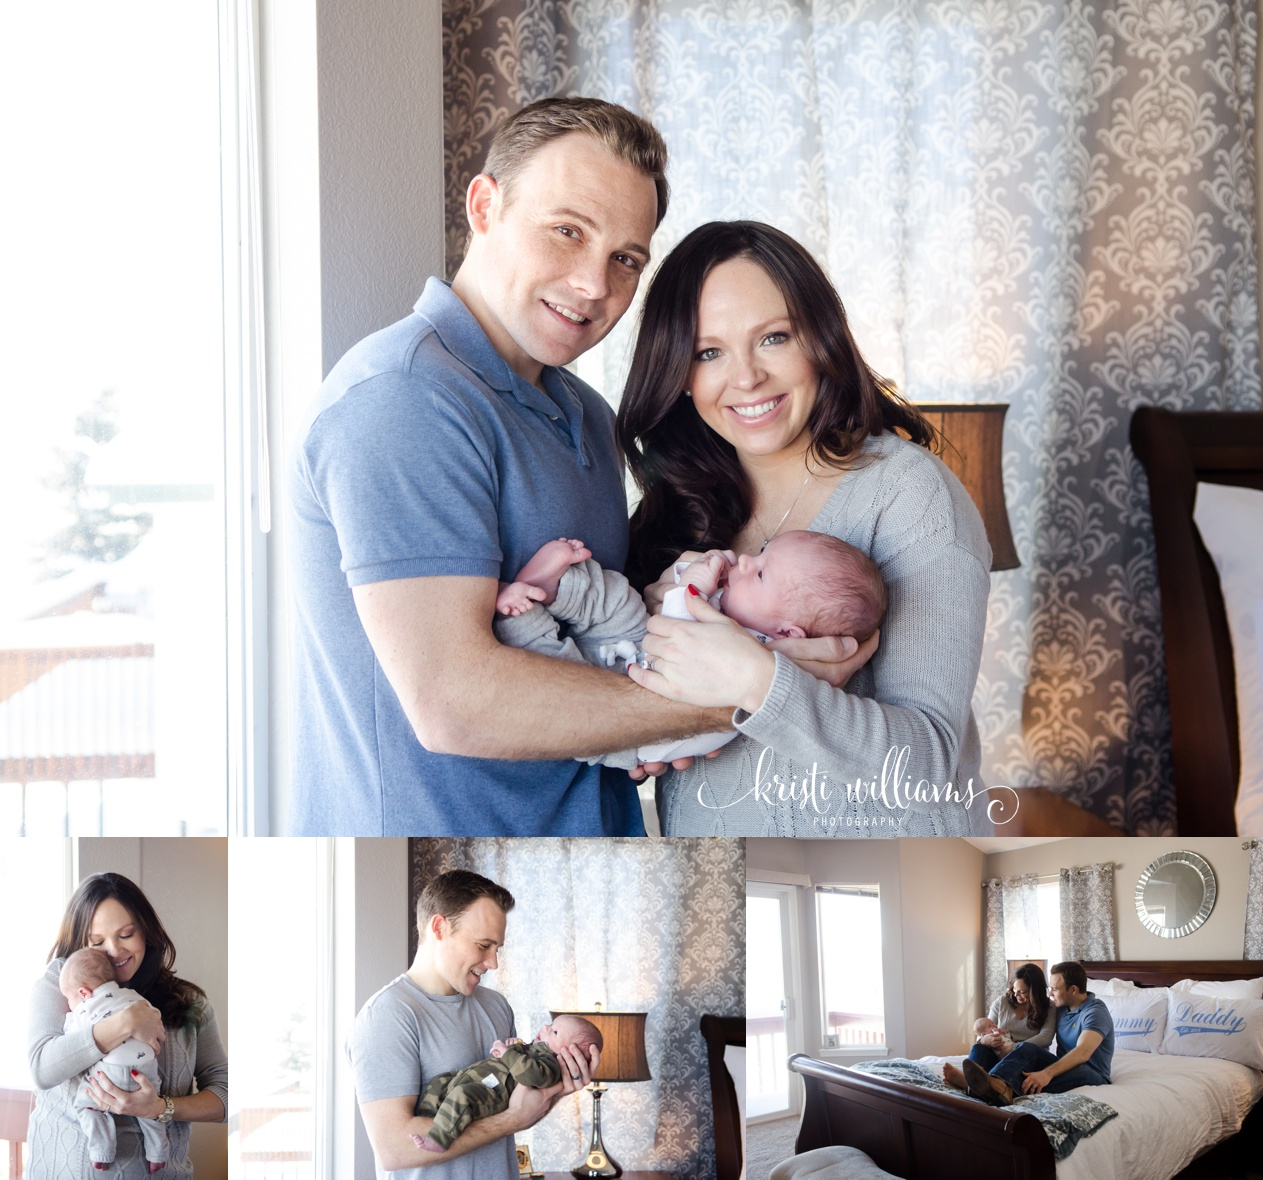 newborn photography in your house www.kristiwilliamsphotography.com